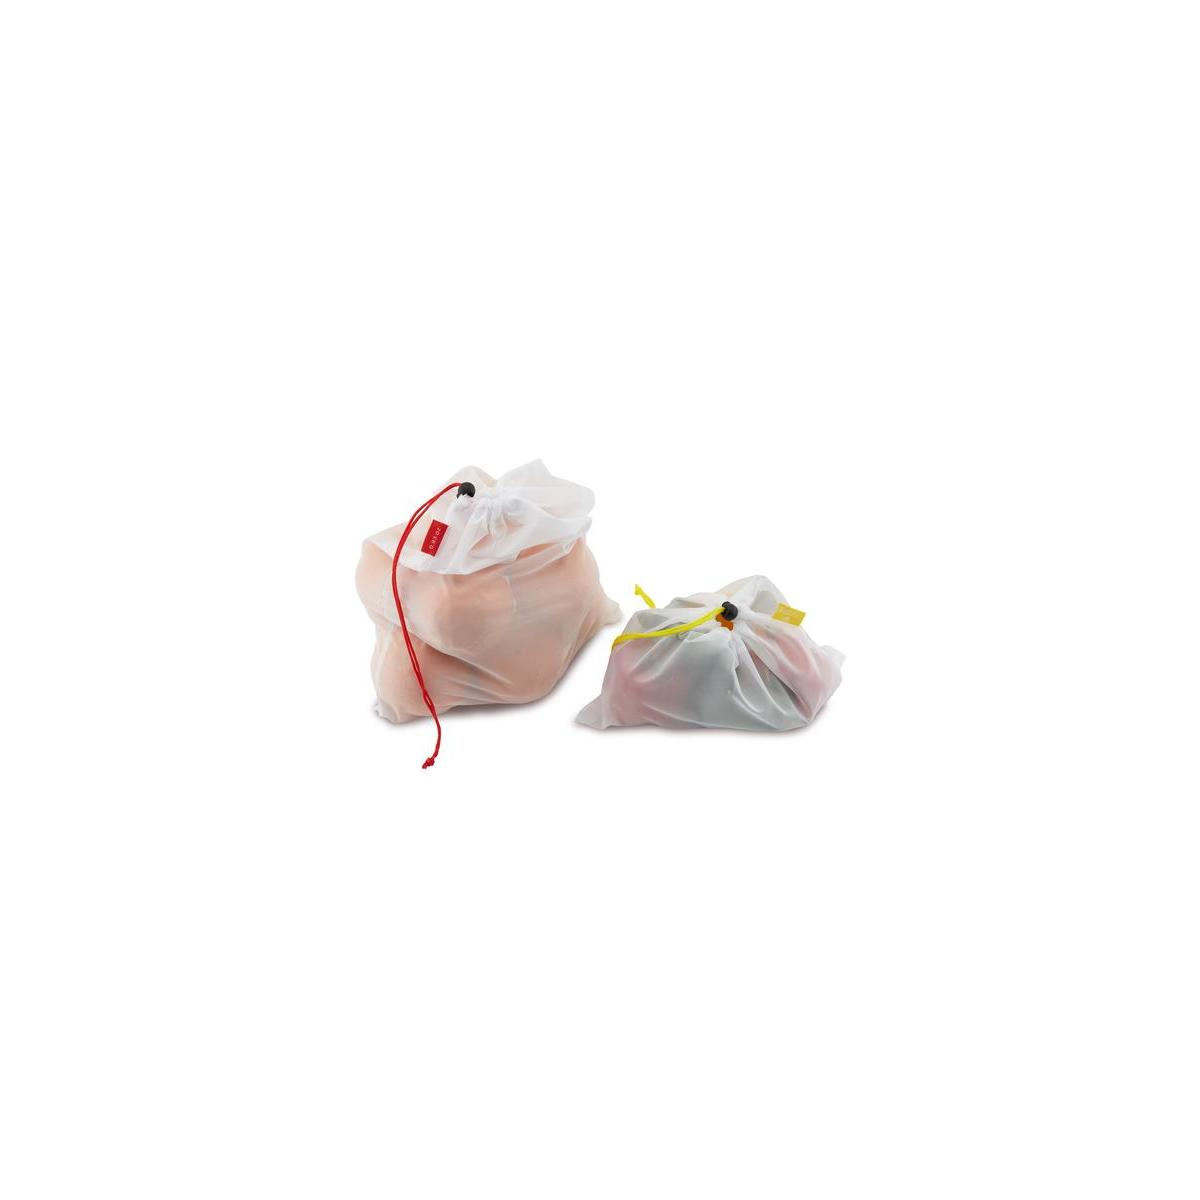 Outills Reusable Mesh Produce Bags - See through, Washable Bags - Set of 12 Bags - 3 Different Sizes